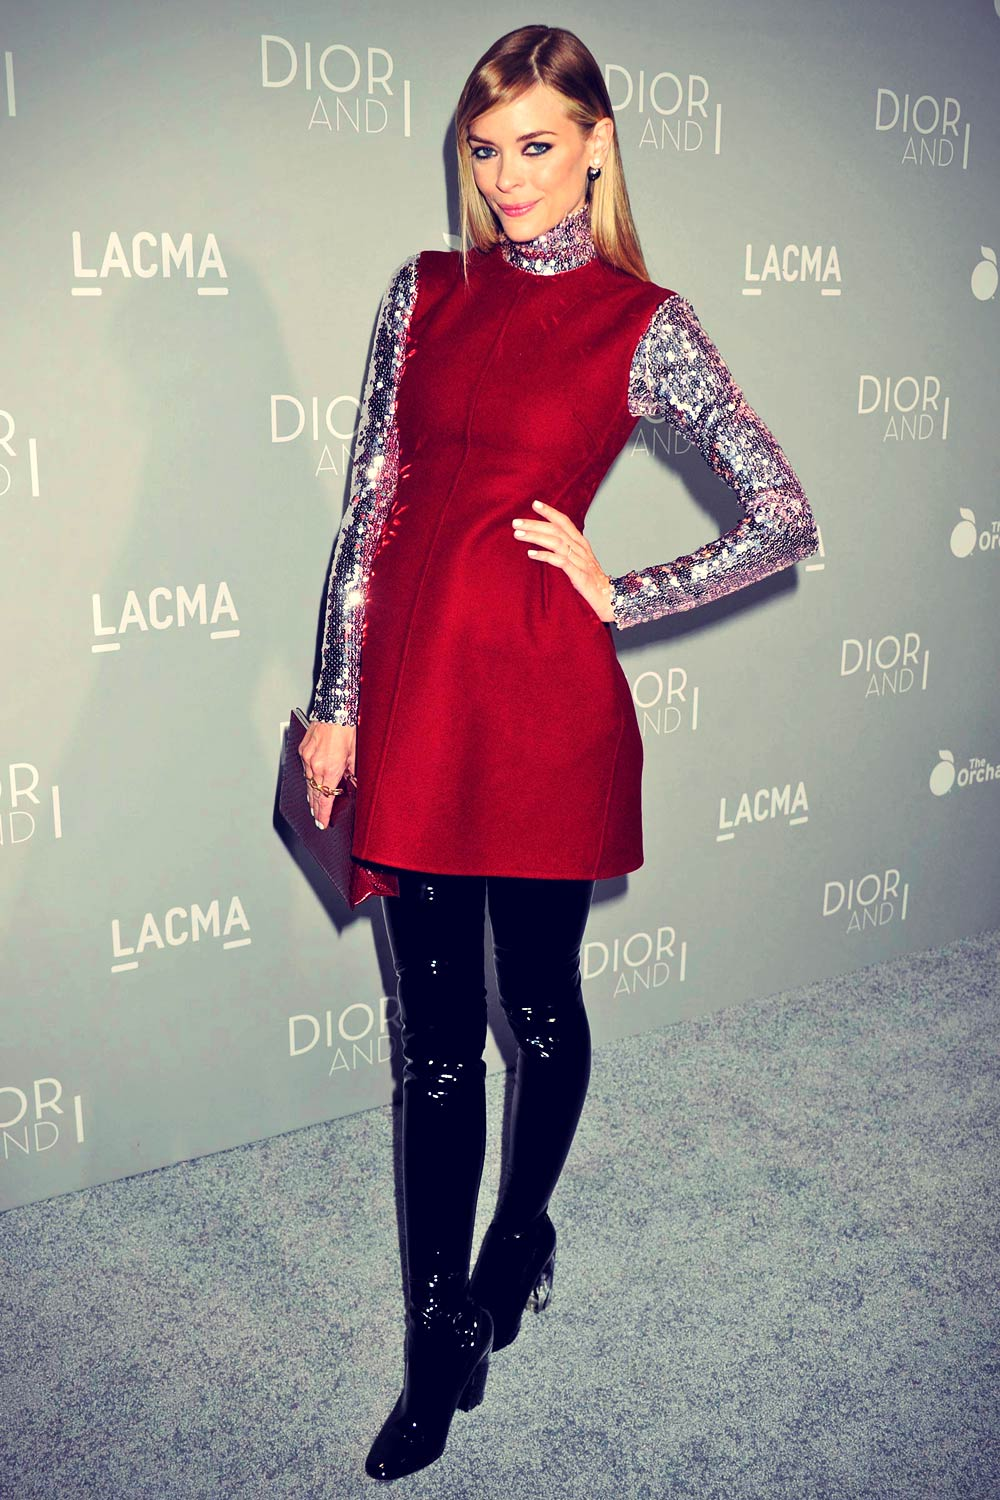 Jaime King attends Premiere of The Orchard's DIOR & I